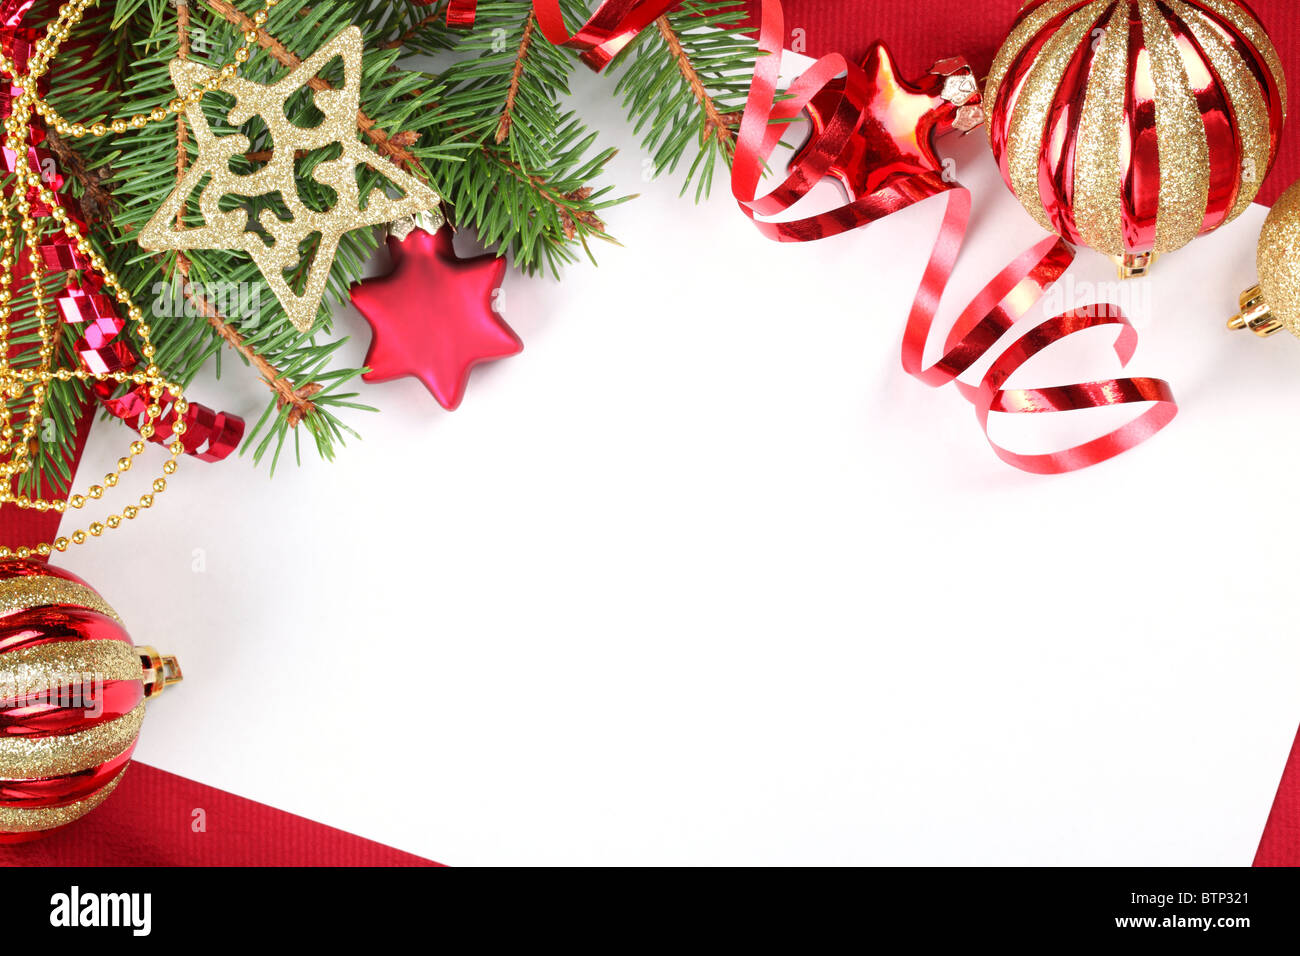 Christmas Message Stock Photos & Christmas Message Stock